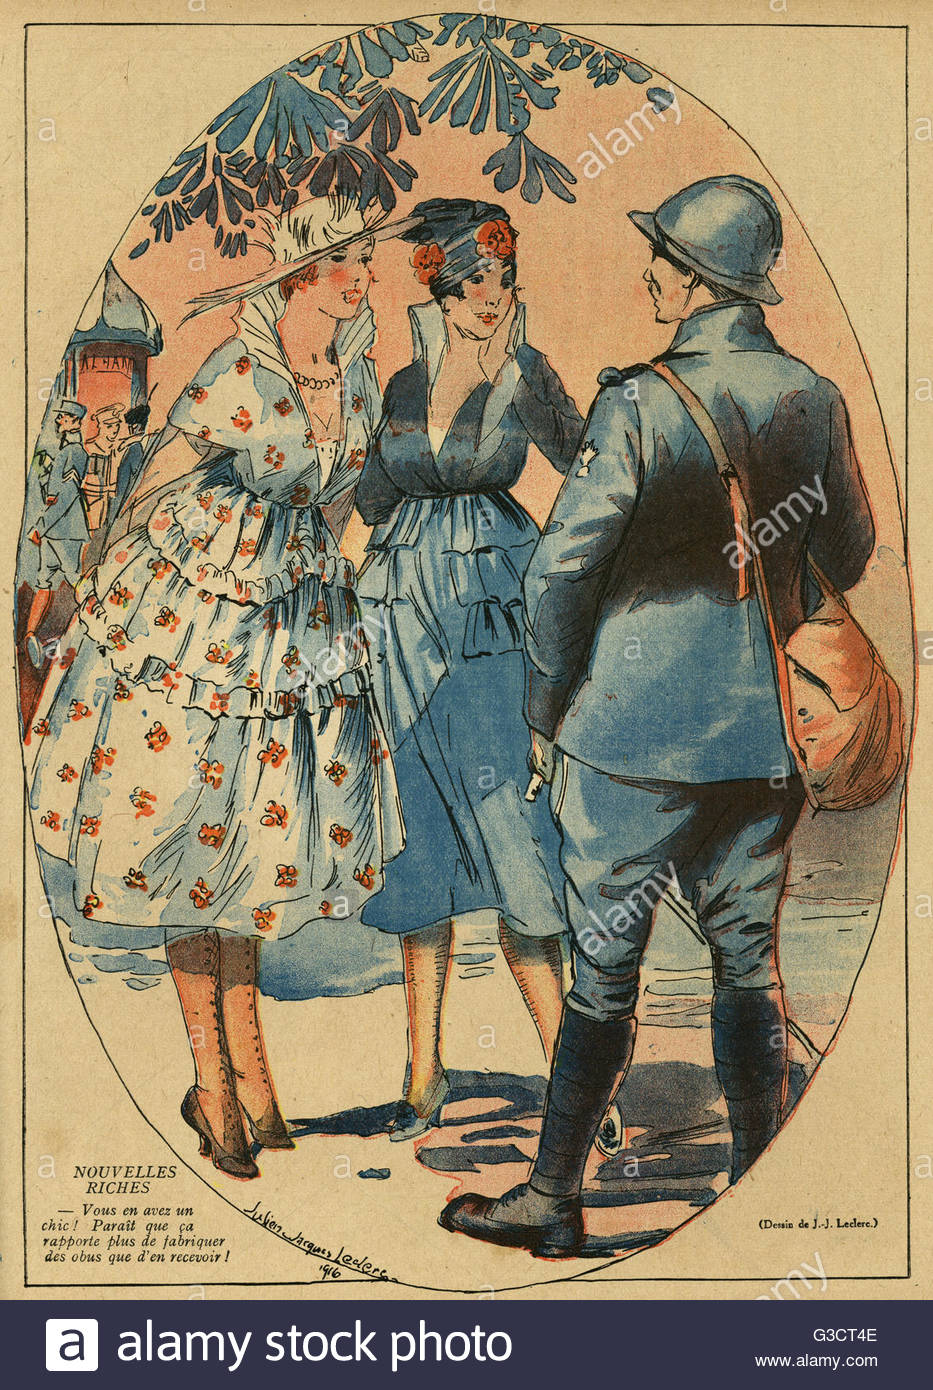 Cartoon, Nouvelles riches.  Two rich women chat with a French soldier, commenting that it's more lucrative to - Stock Image